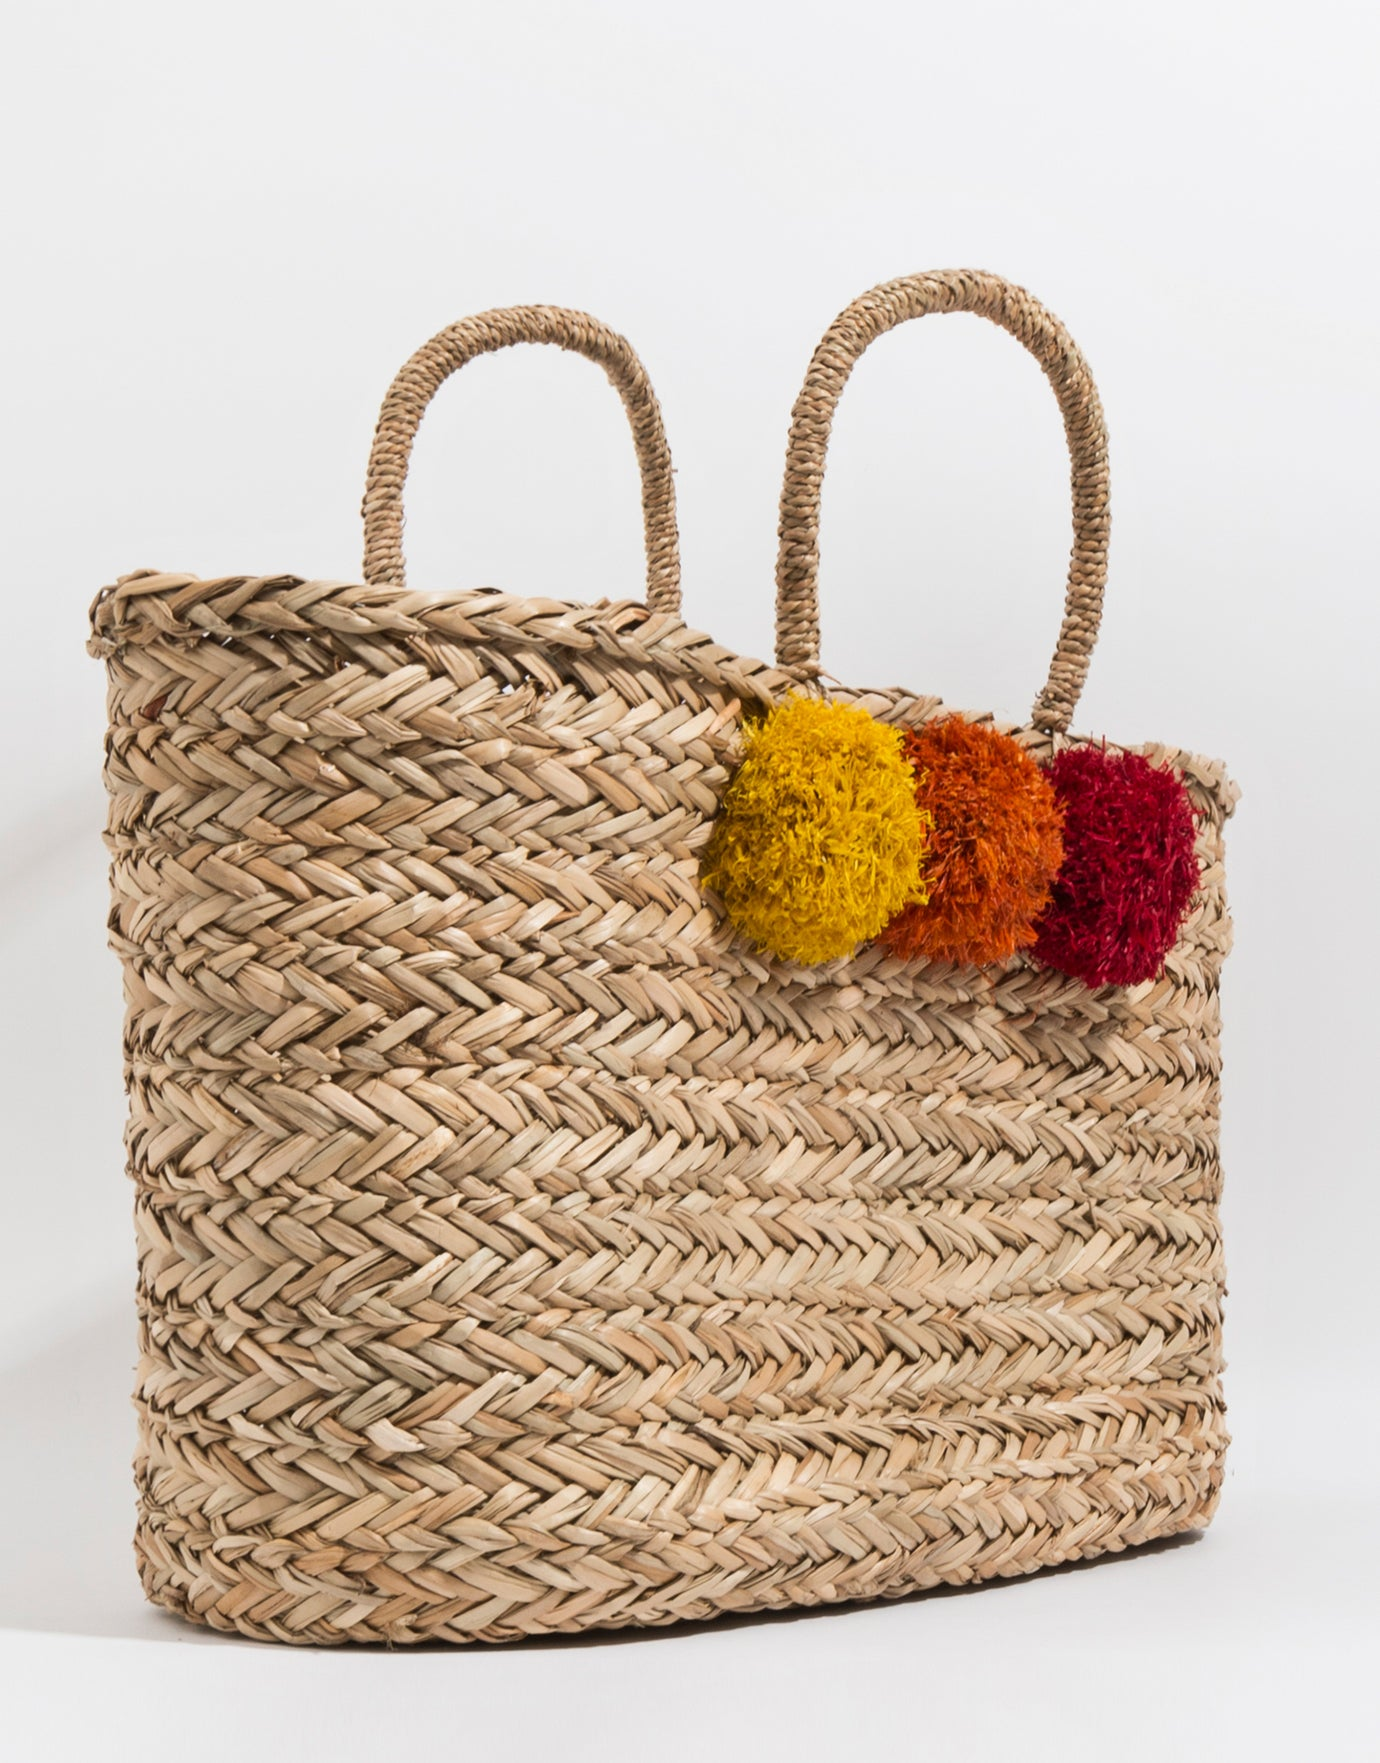 Pia Rossini Sozo Basket - Natural